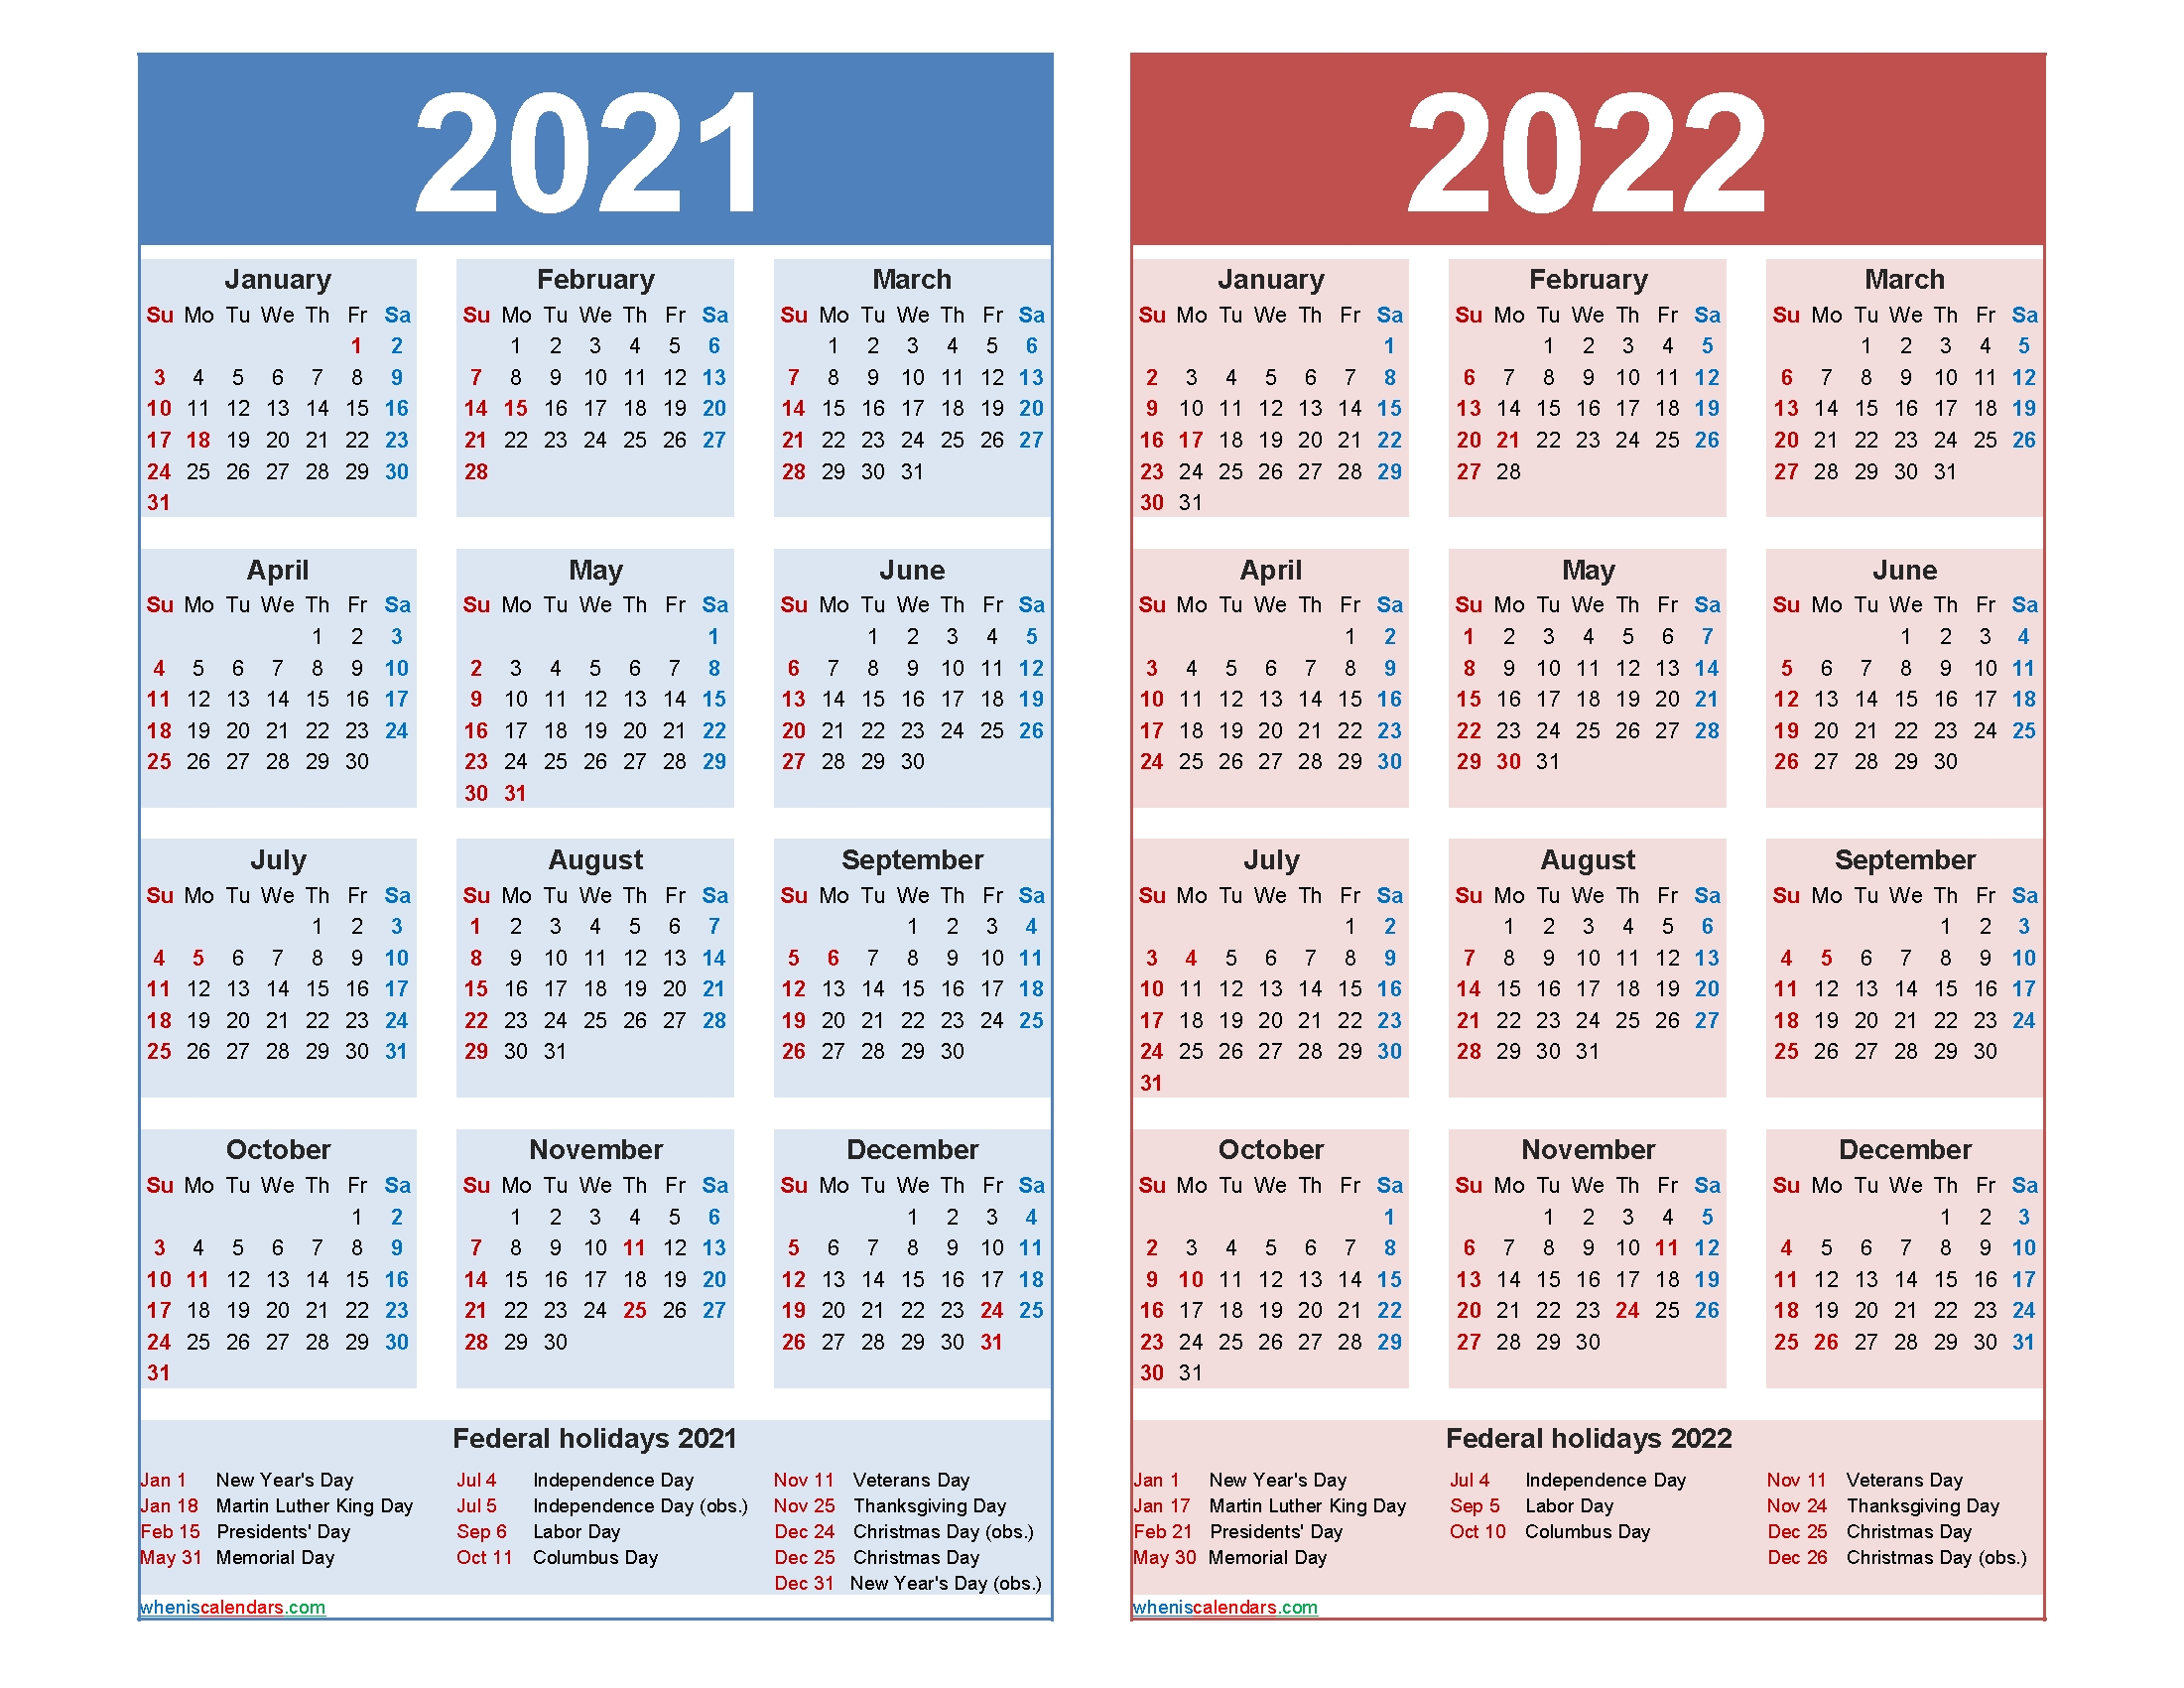 Free 2021 And 2022 Calendar Printable With Holidays – Free within 2020 2021 2022 Calendar Printable